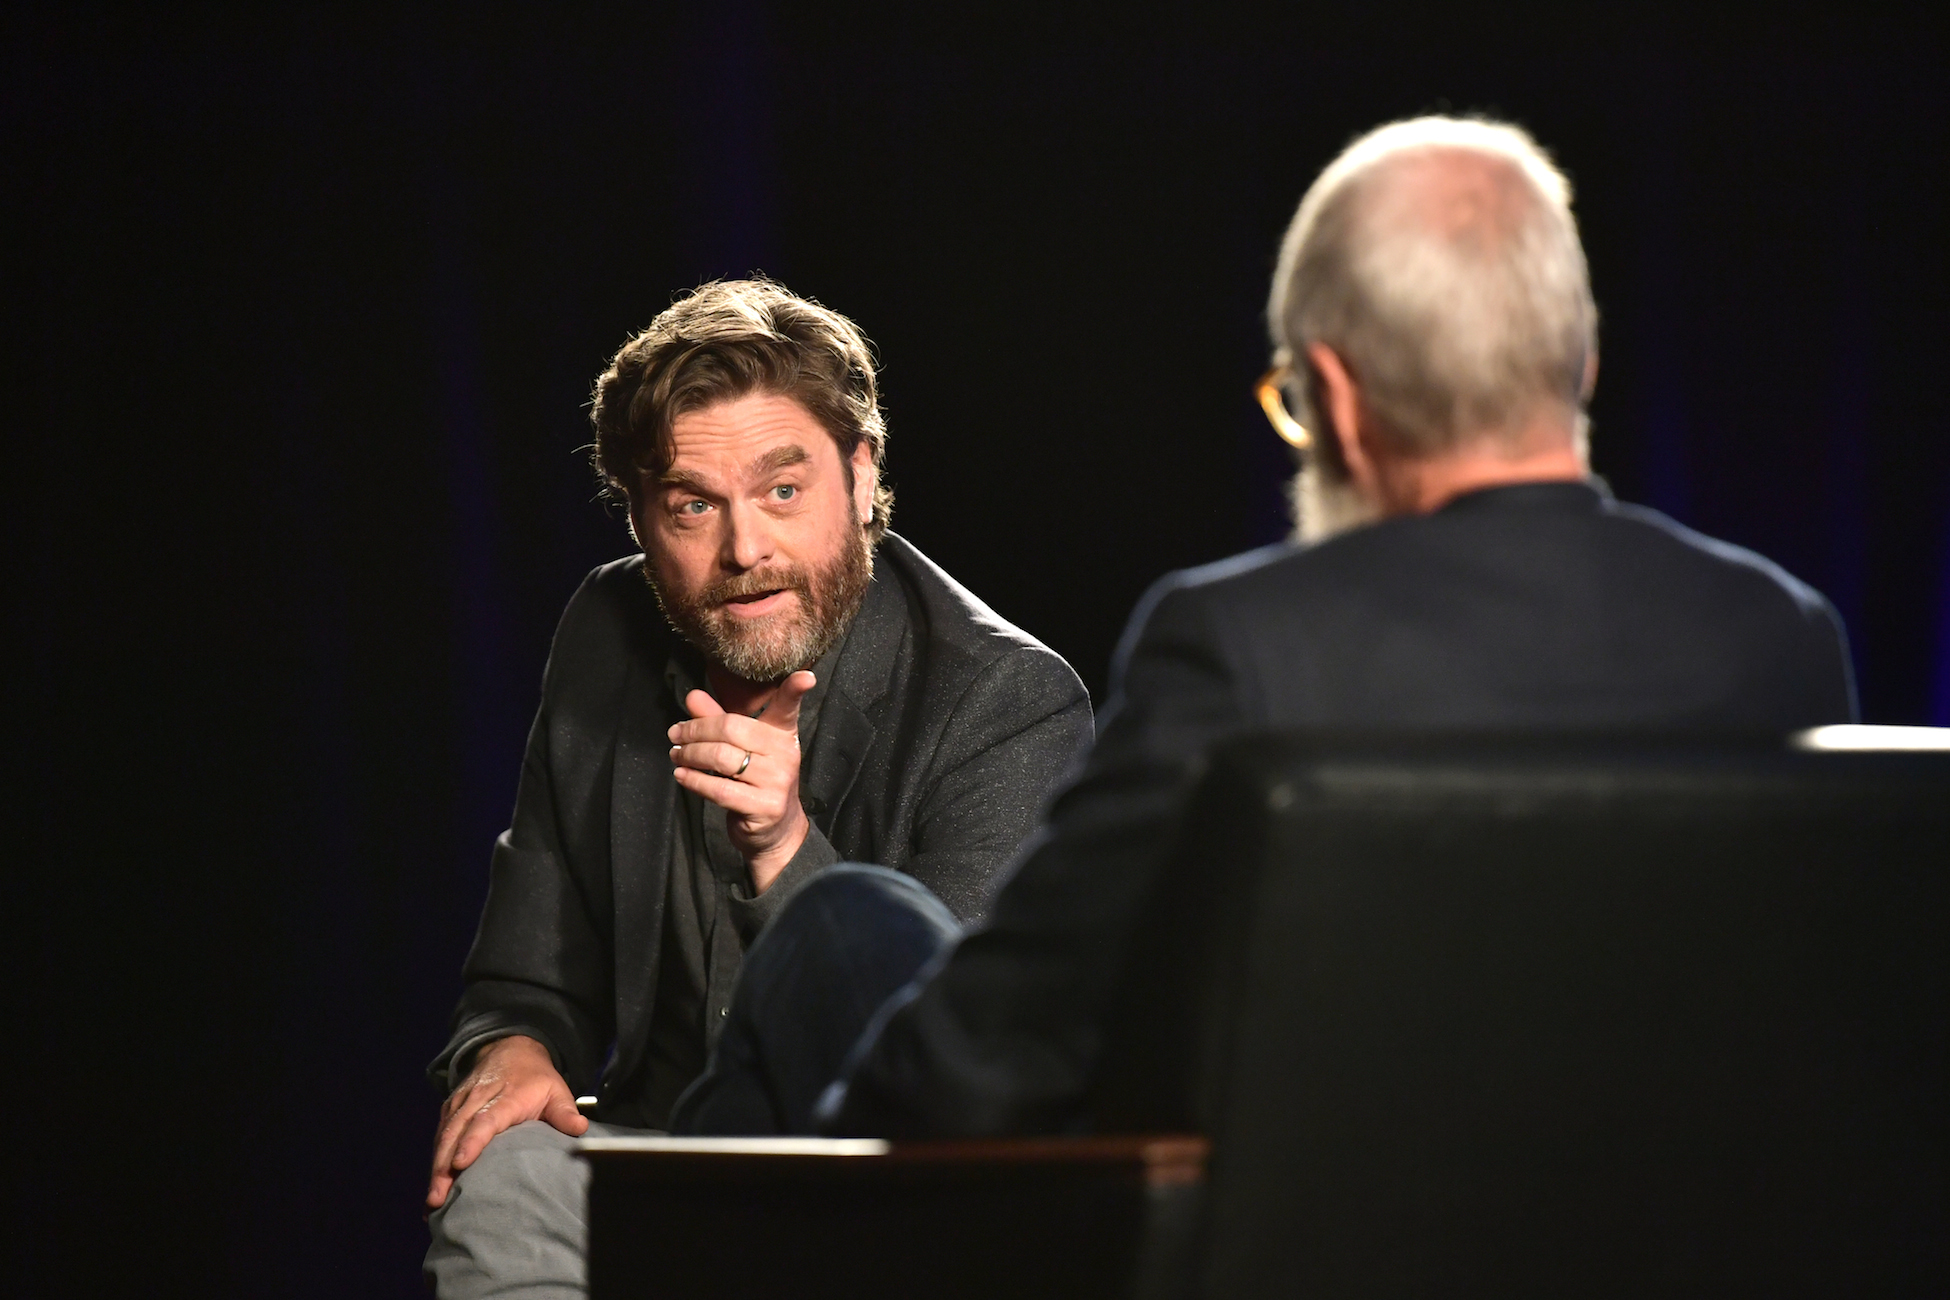 'Between Two Ferns' Movie: Zach Galifianakis and Co-Star David Letterman Reveal Details